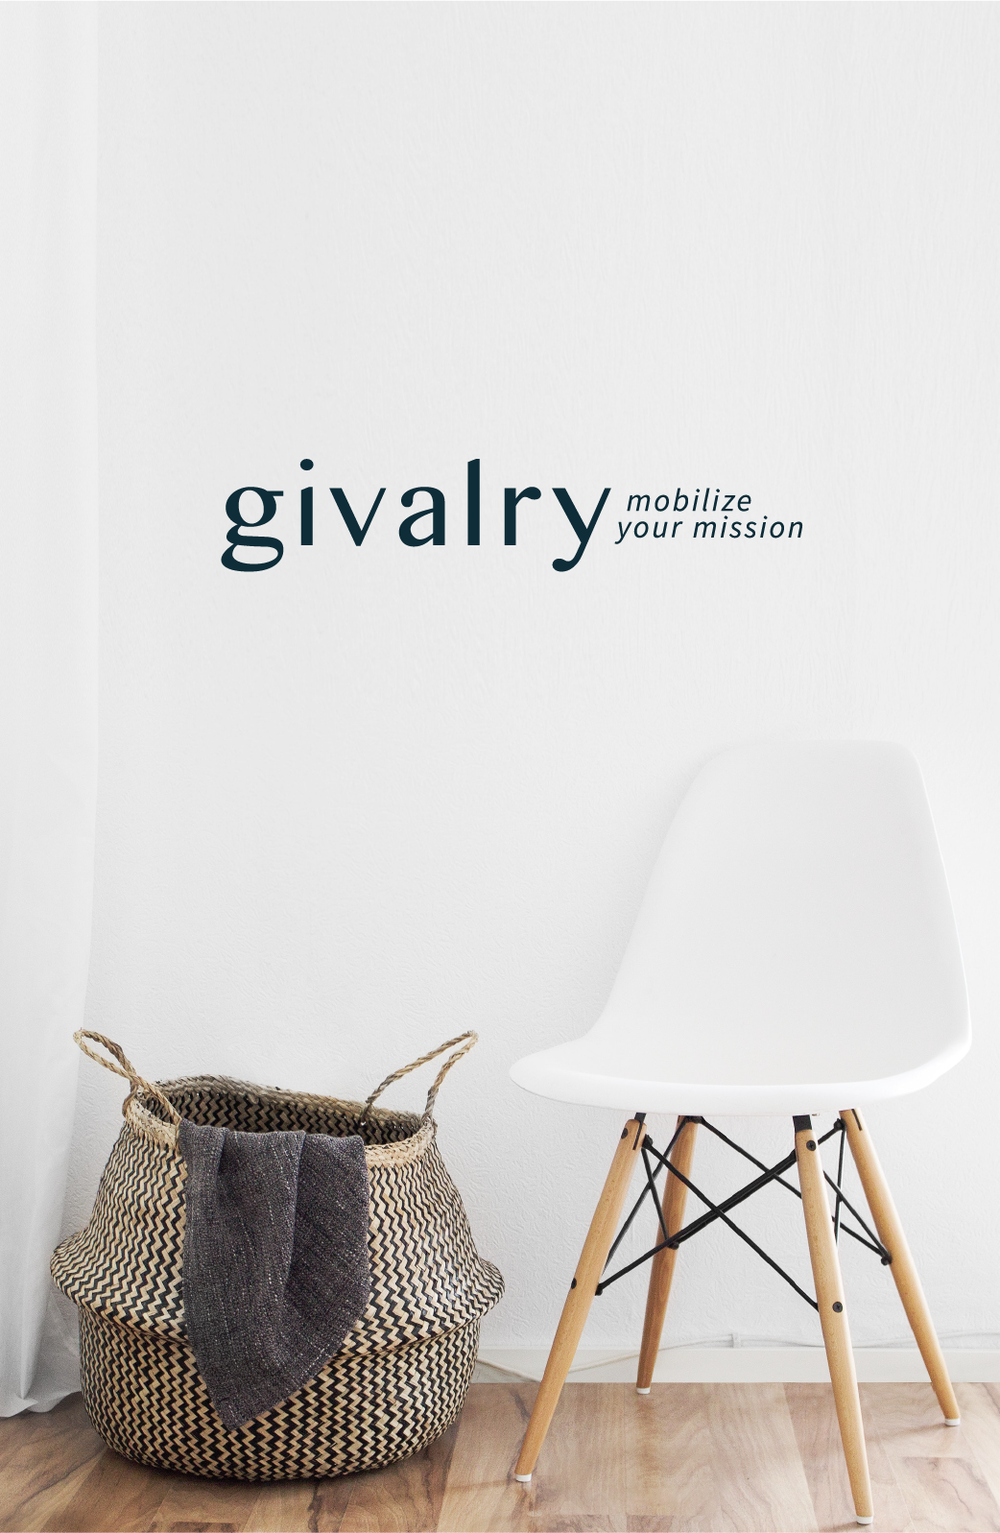 Givarly logo designed by Salt Design Co. shown on a photo with a cream wall and a white chair